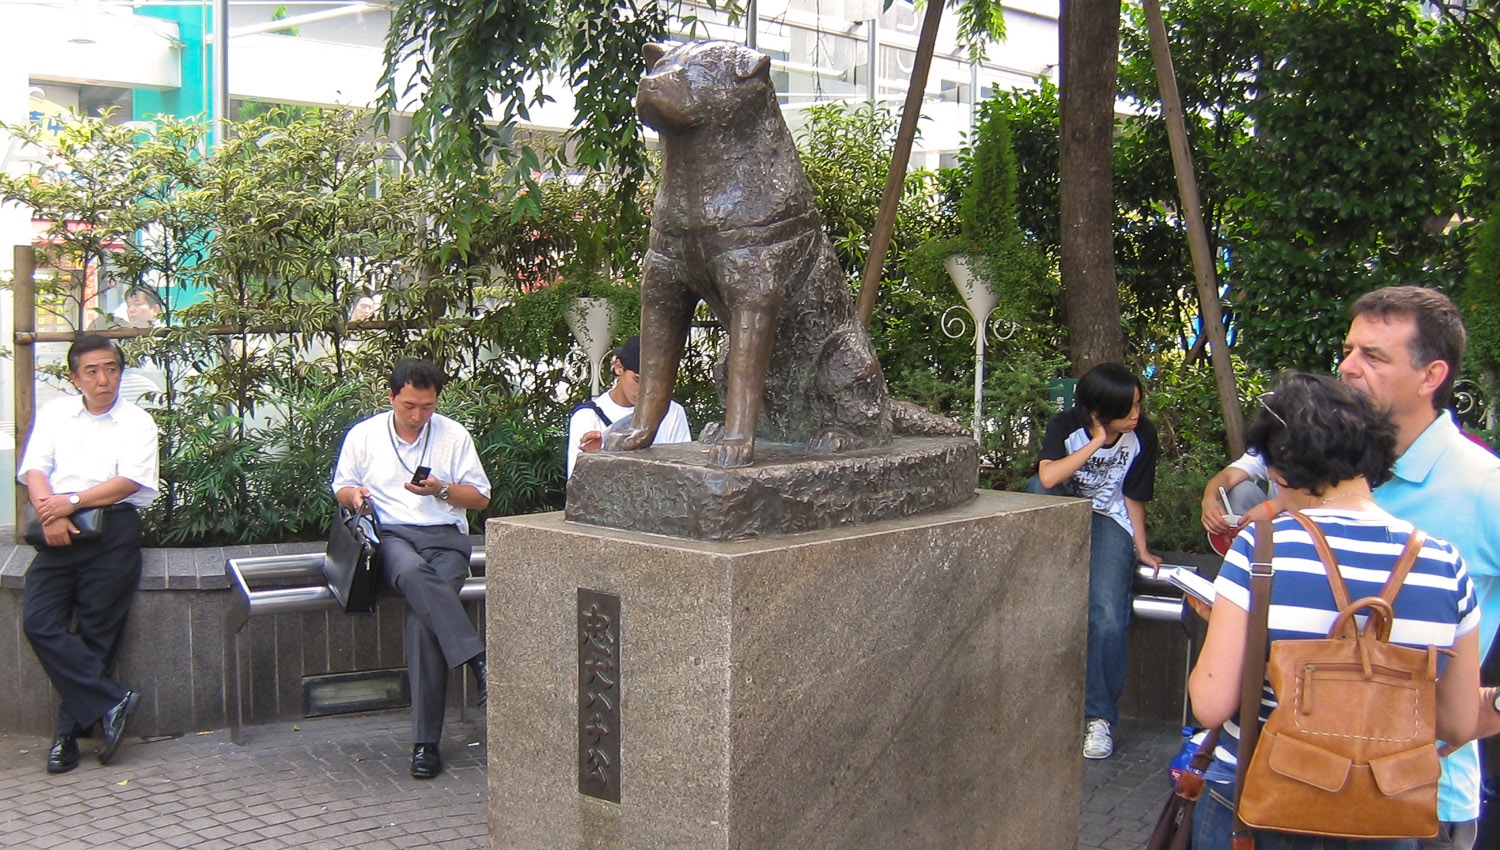 The statue is a popular Shibuya meeting place. Image:     Jose Maria Mateos